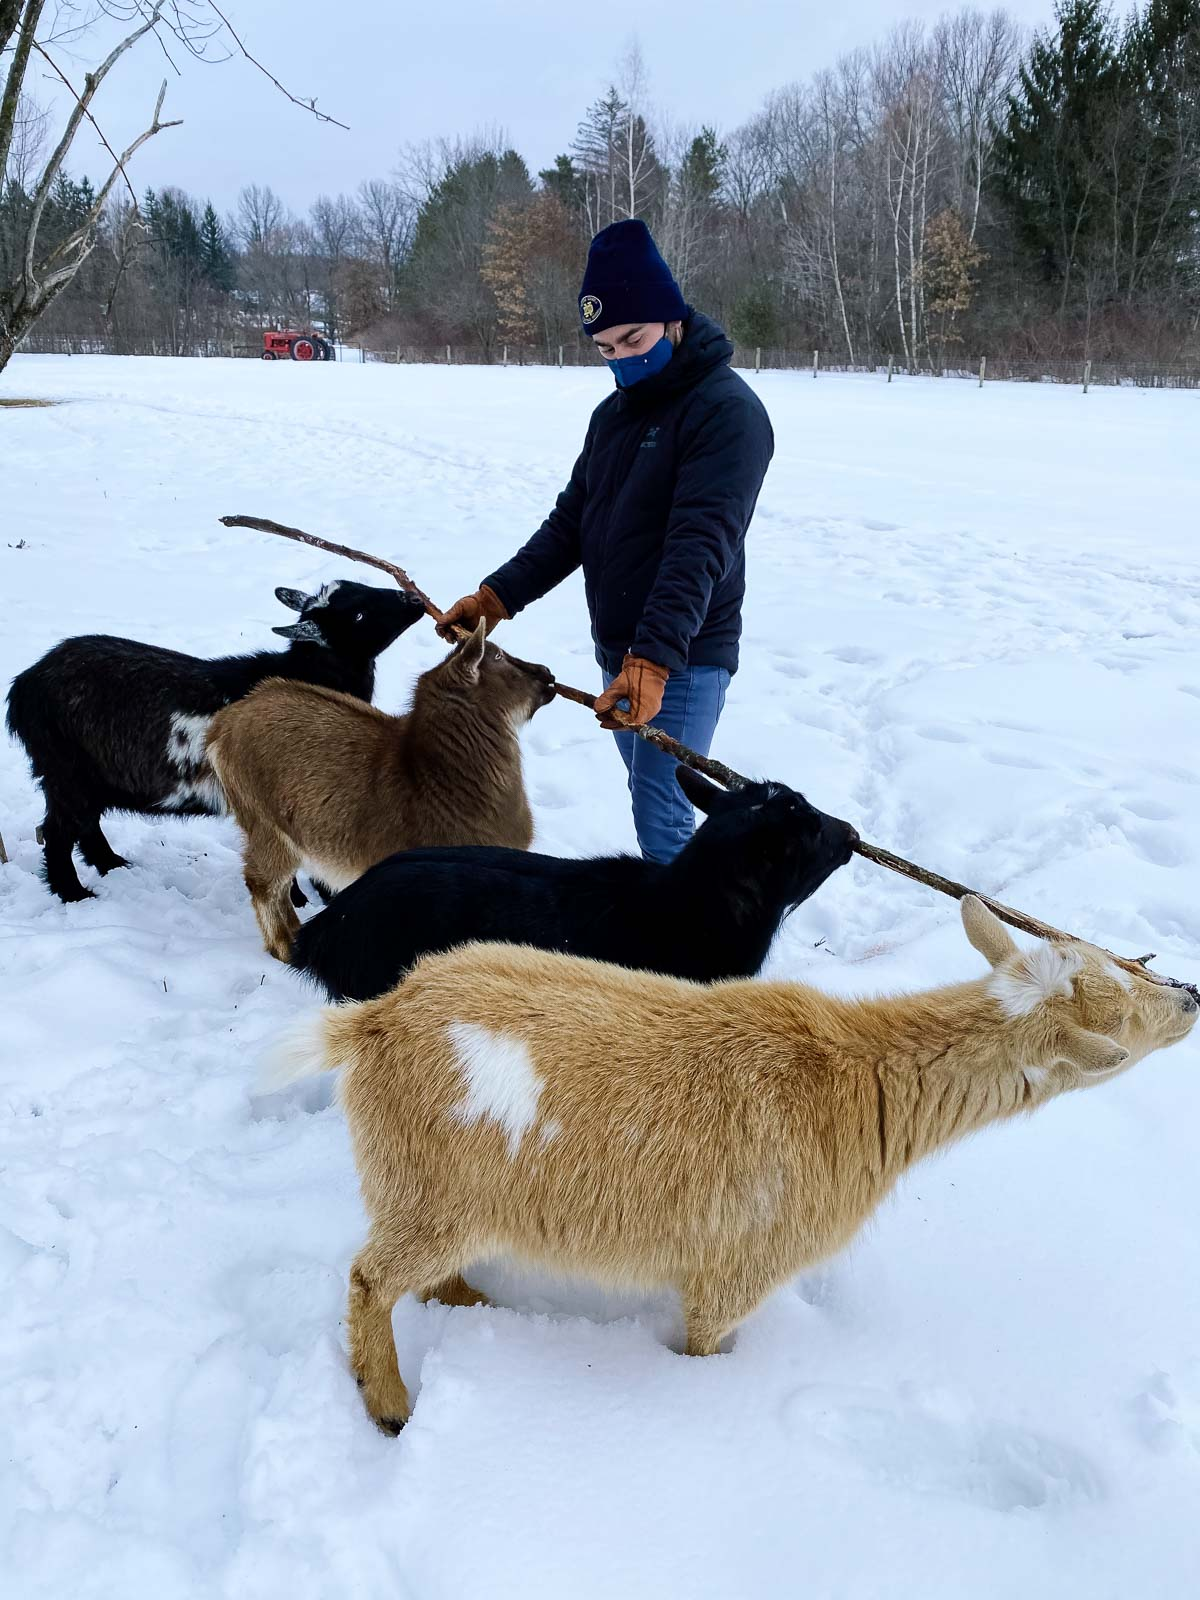 man holding stick with four goats biting the stick in the snow